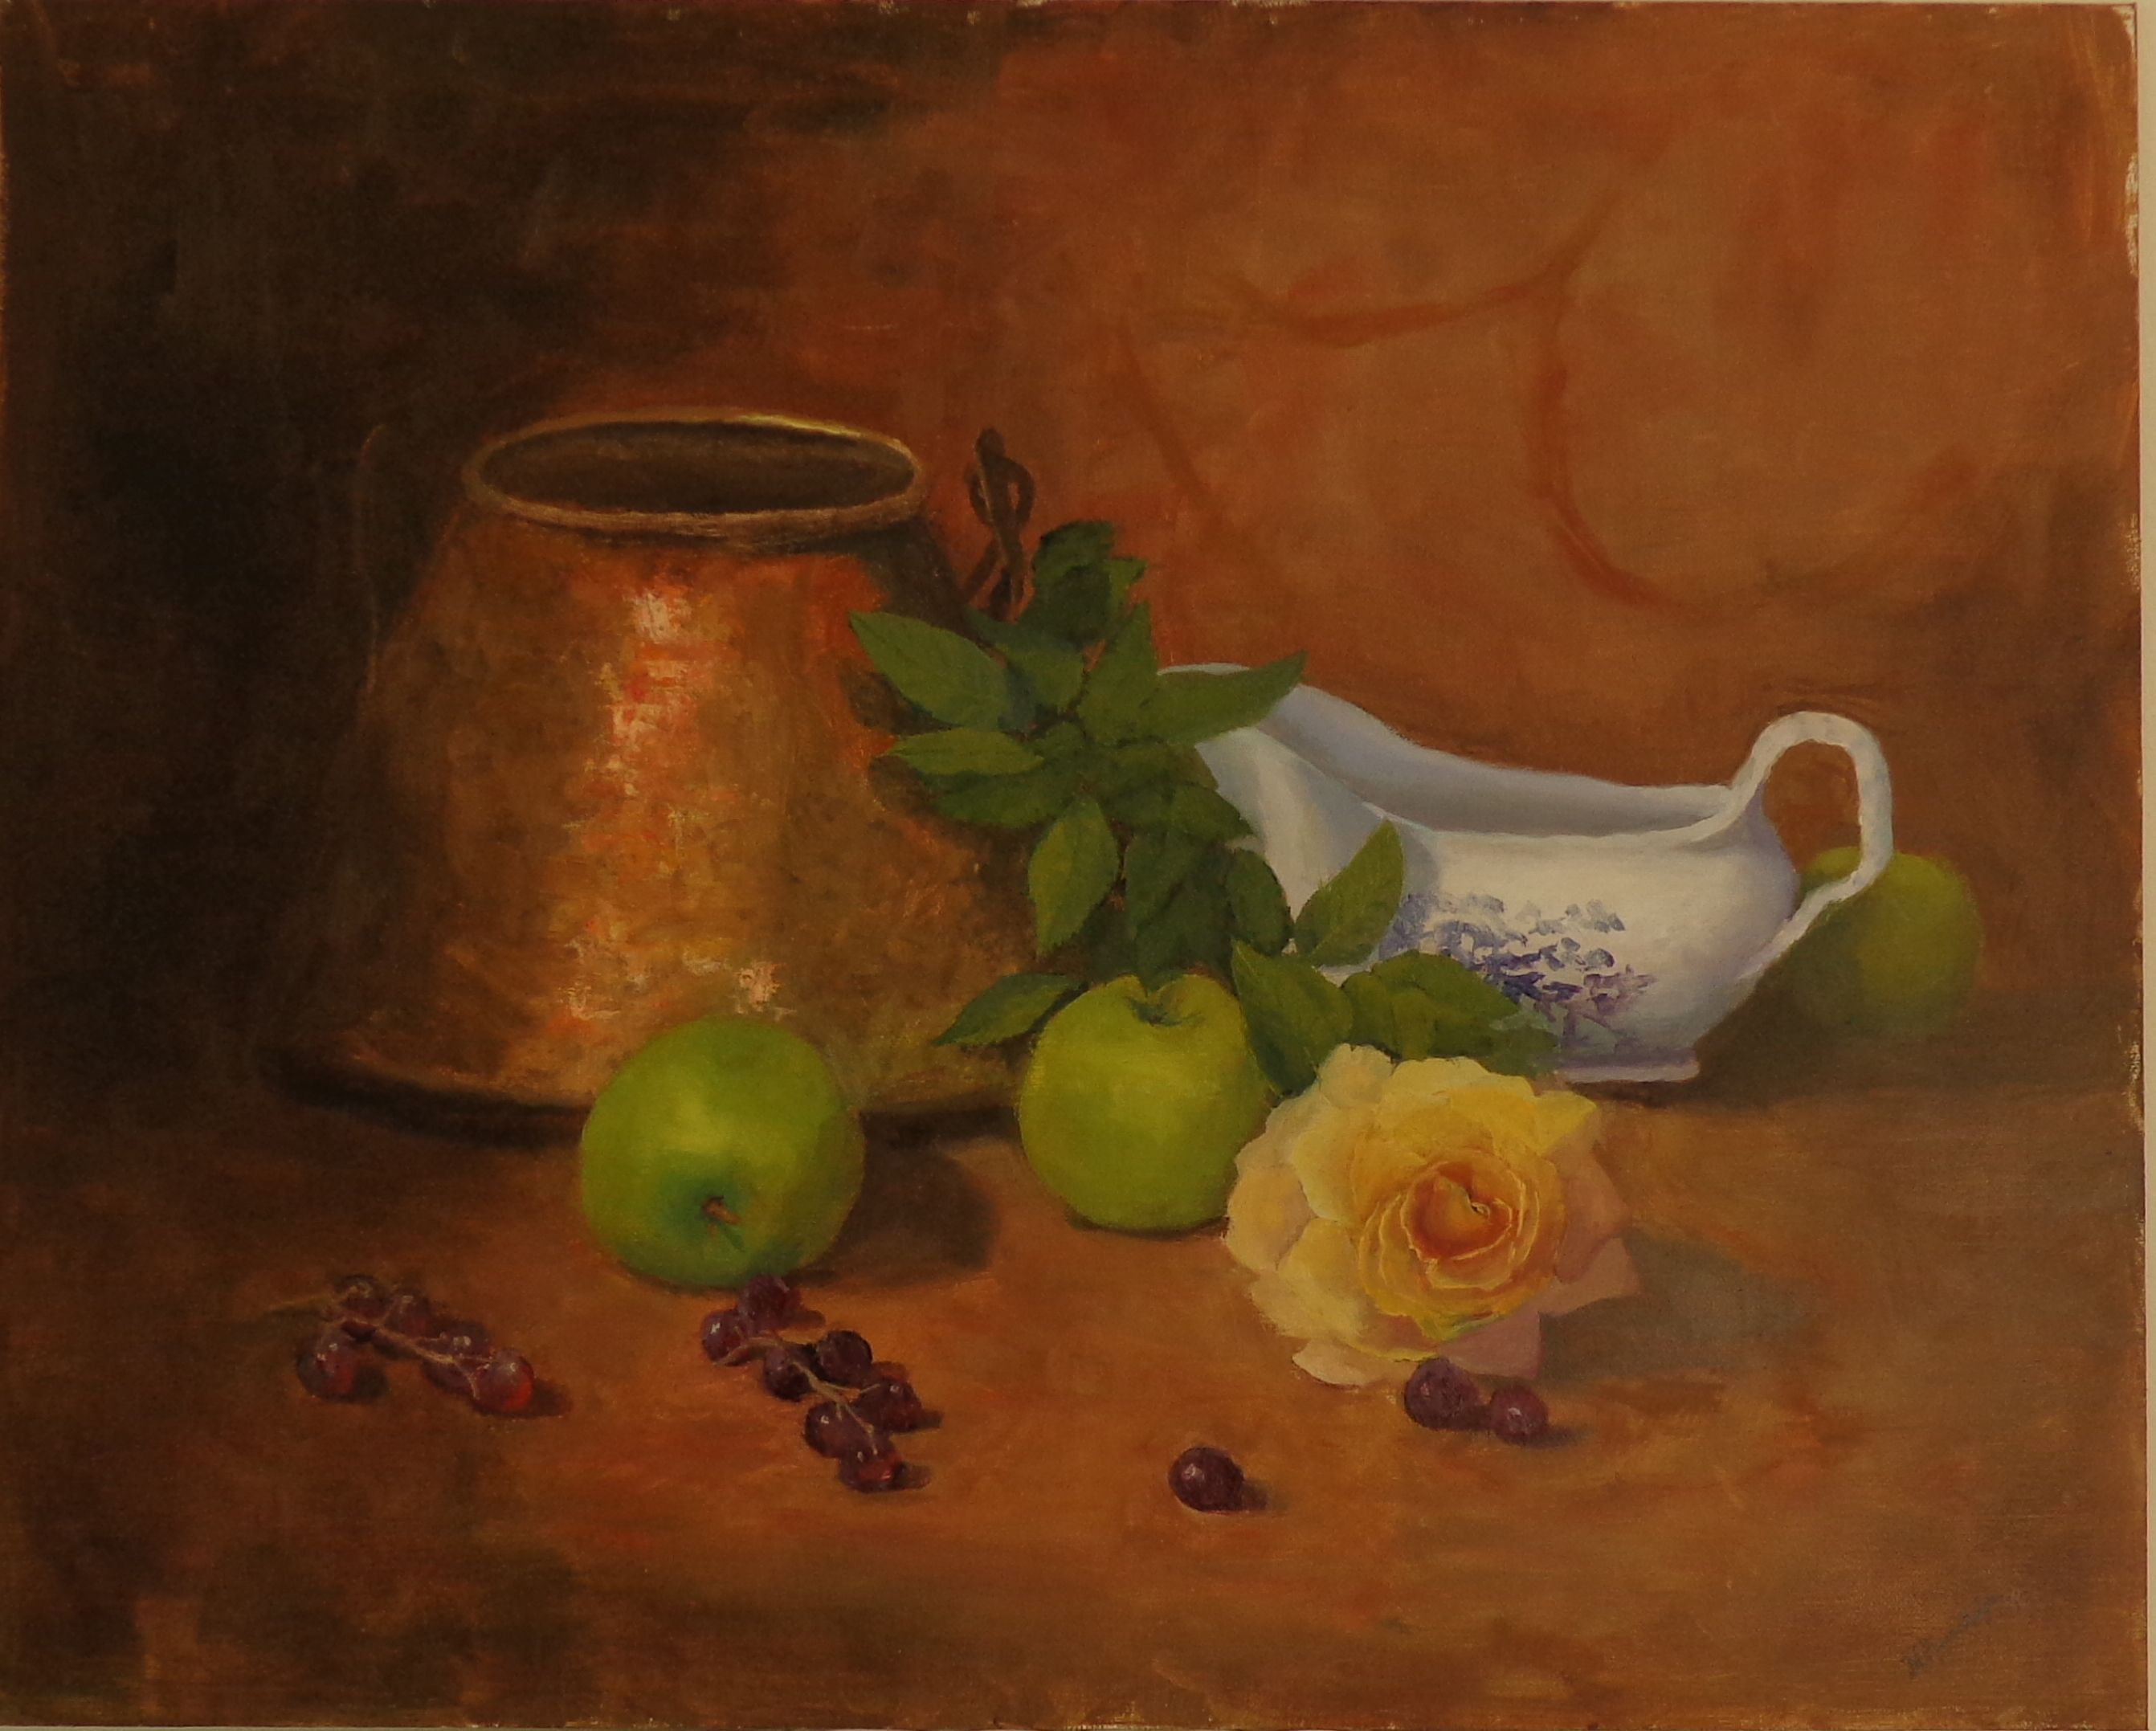 Copper Pot and Rose